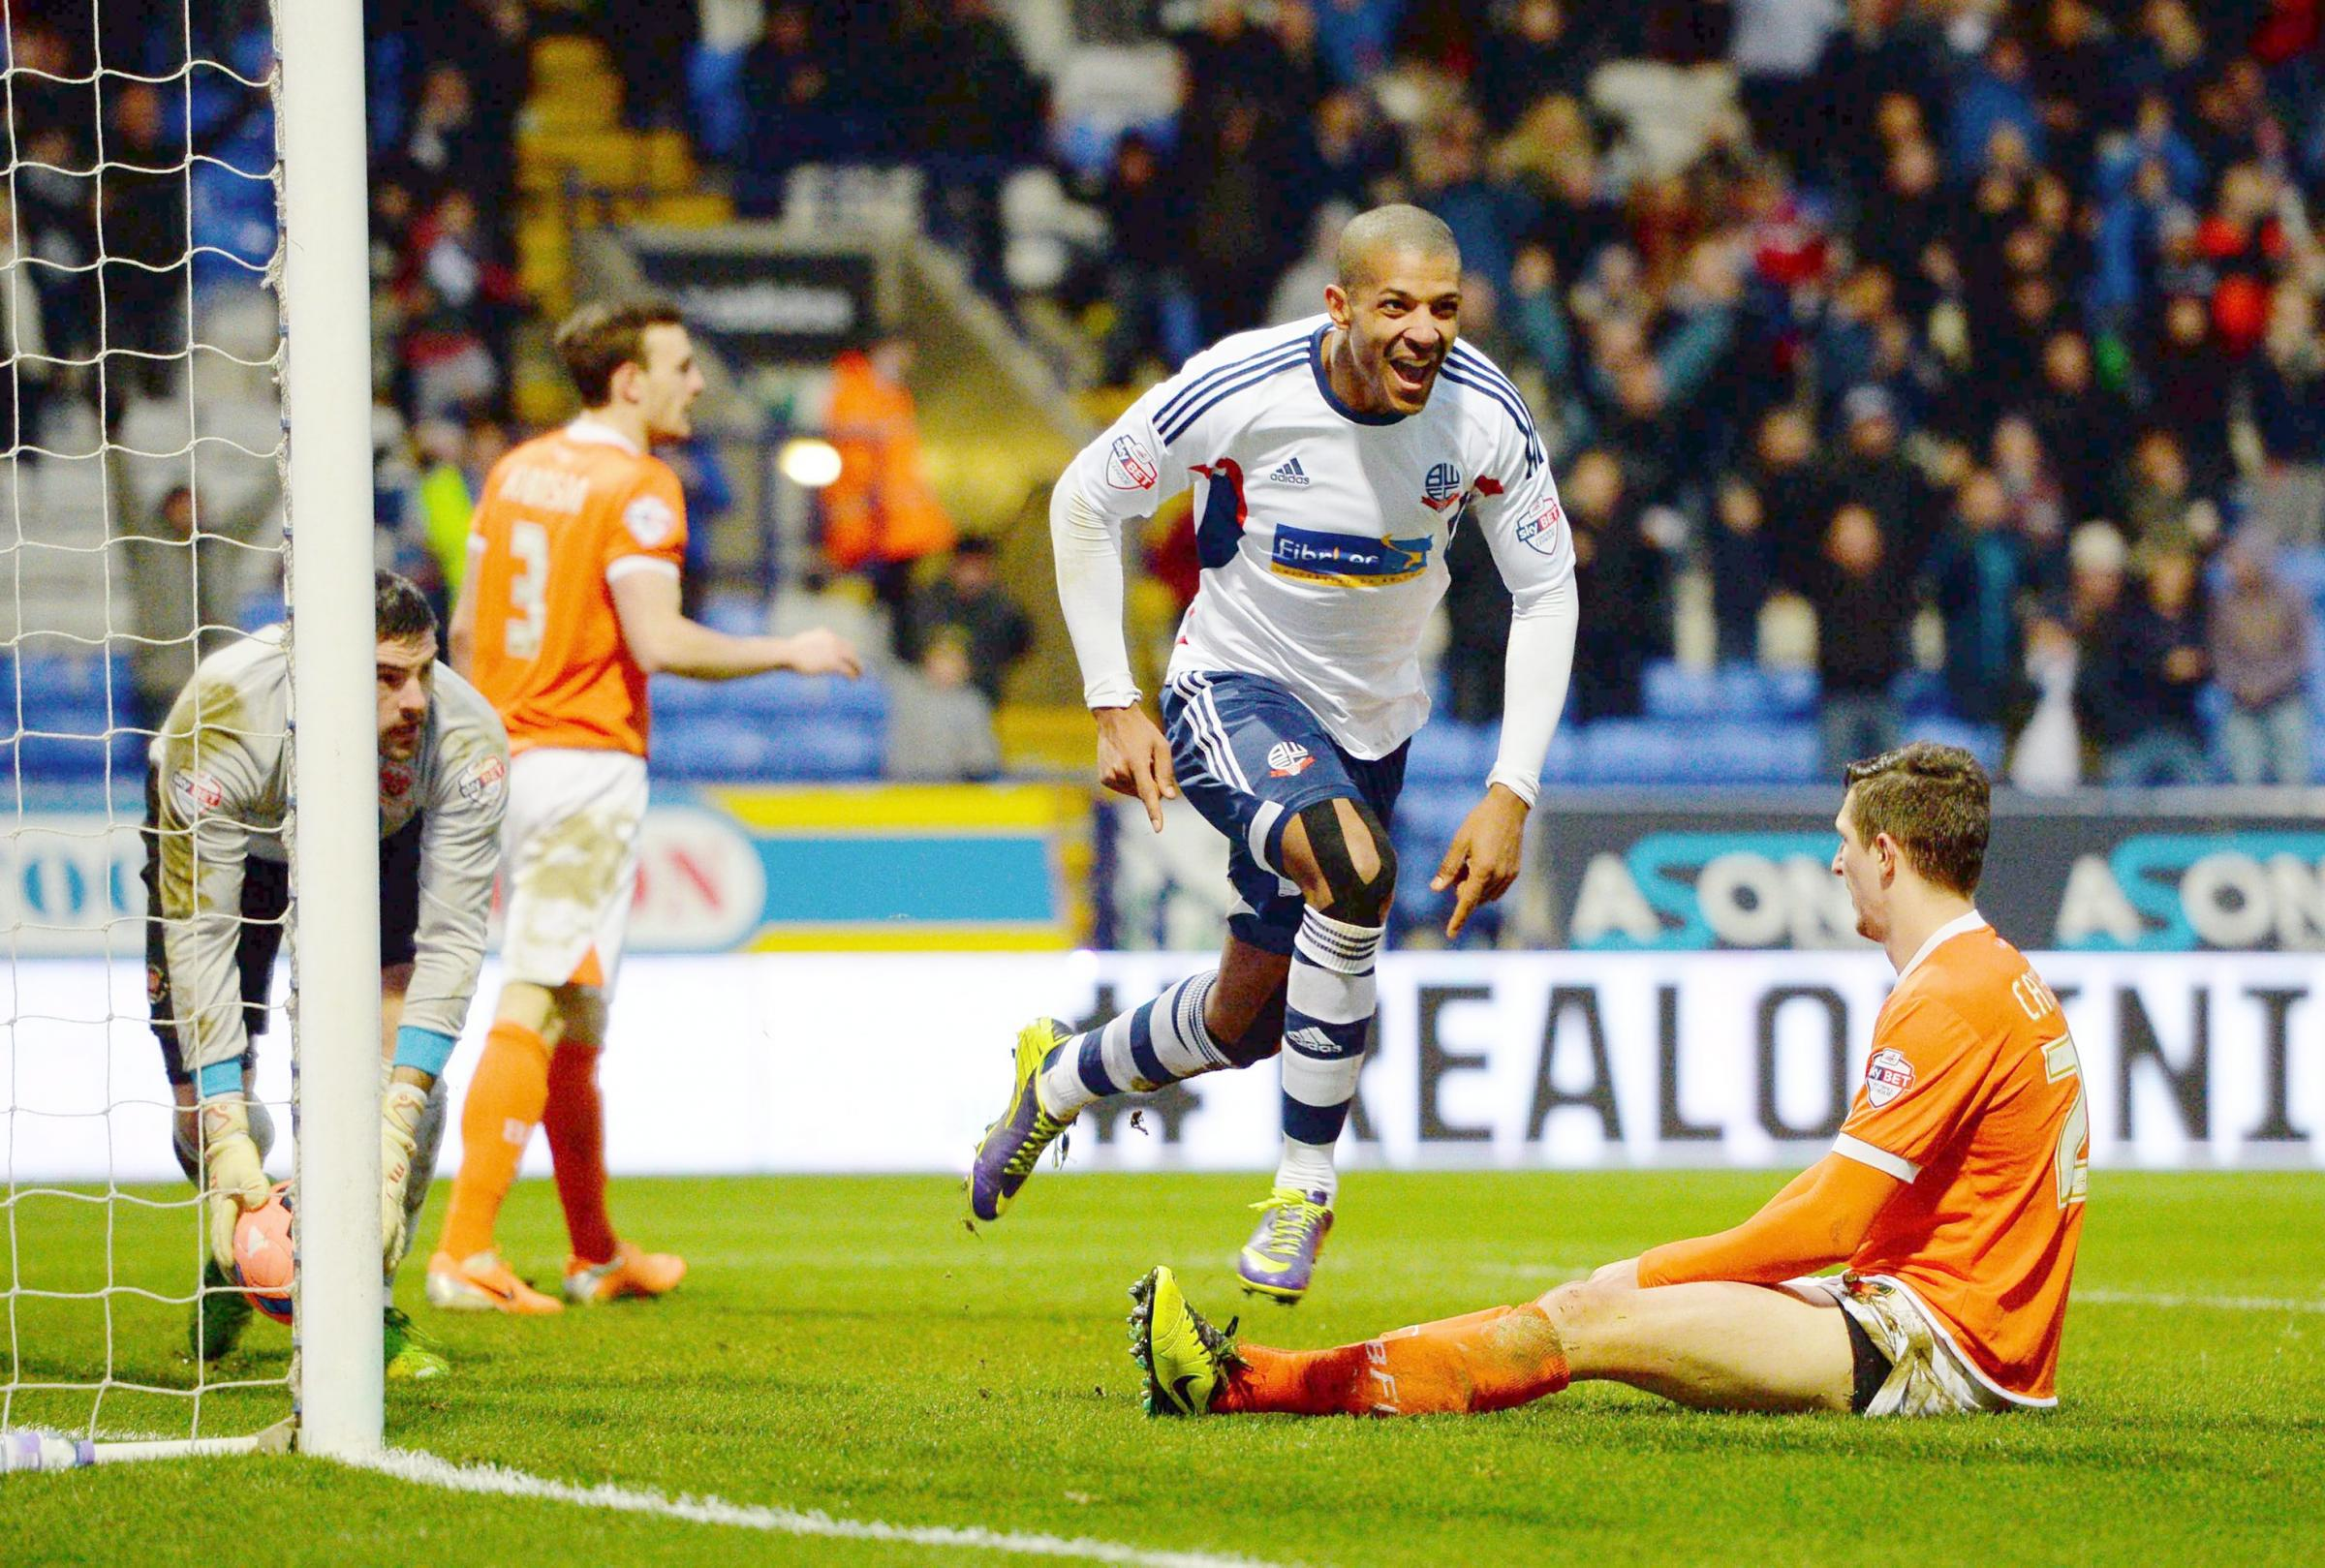 Jermaine Beckford celebrates the goal which takes Wanderers into the fourth round of the FA Cup